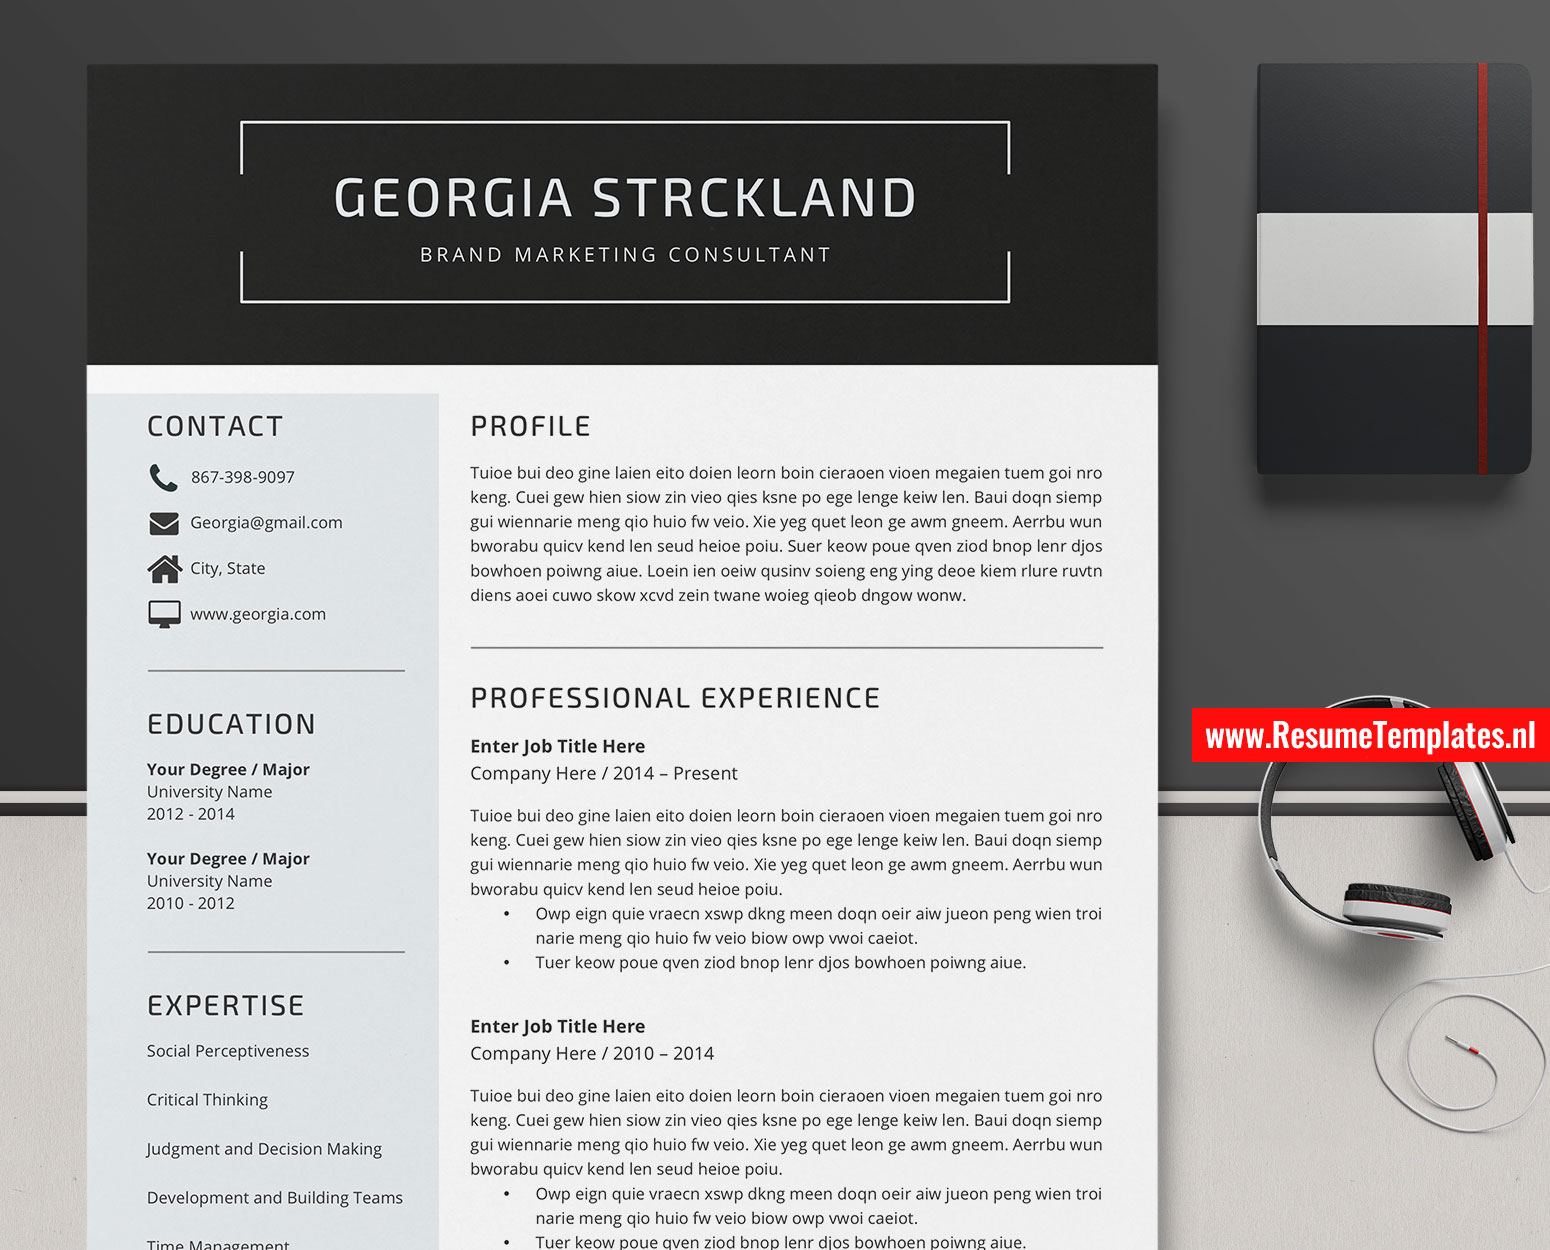 Template For A Cover Letter from www.resumetemplates.nl